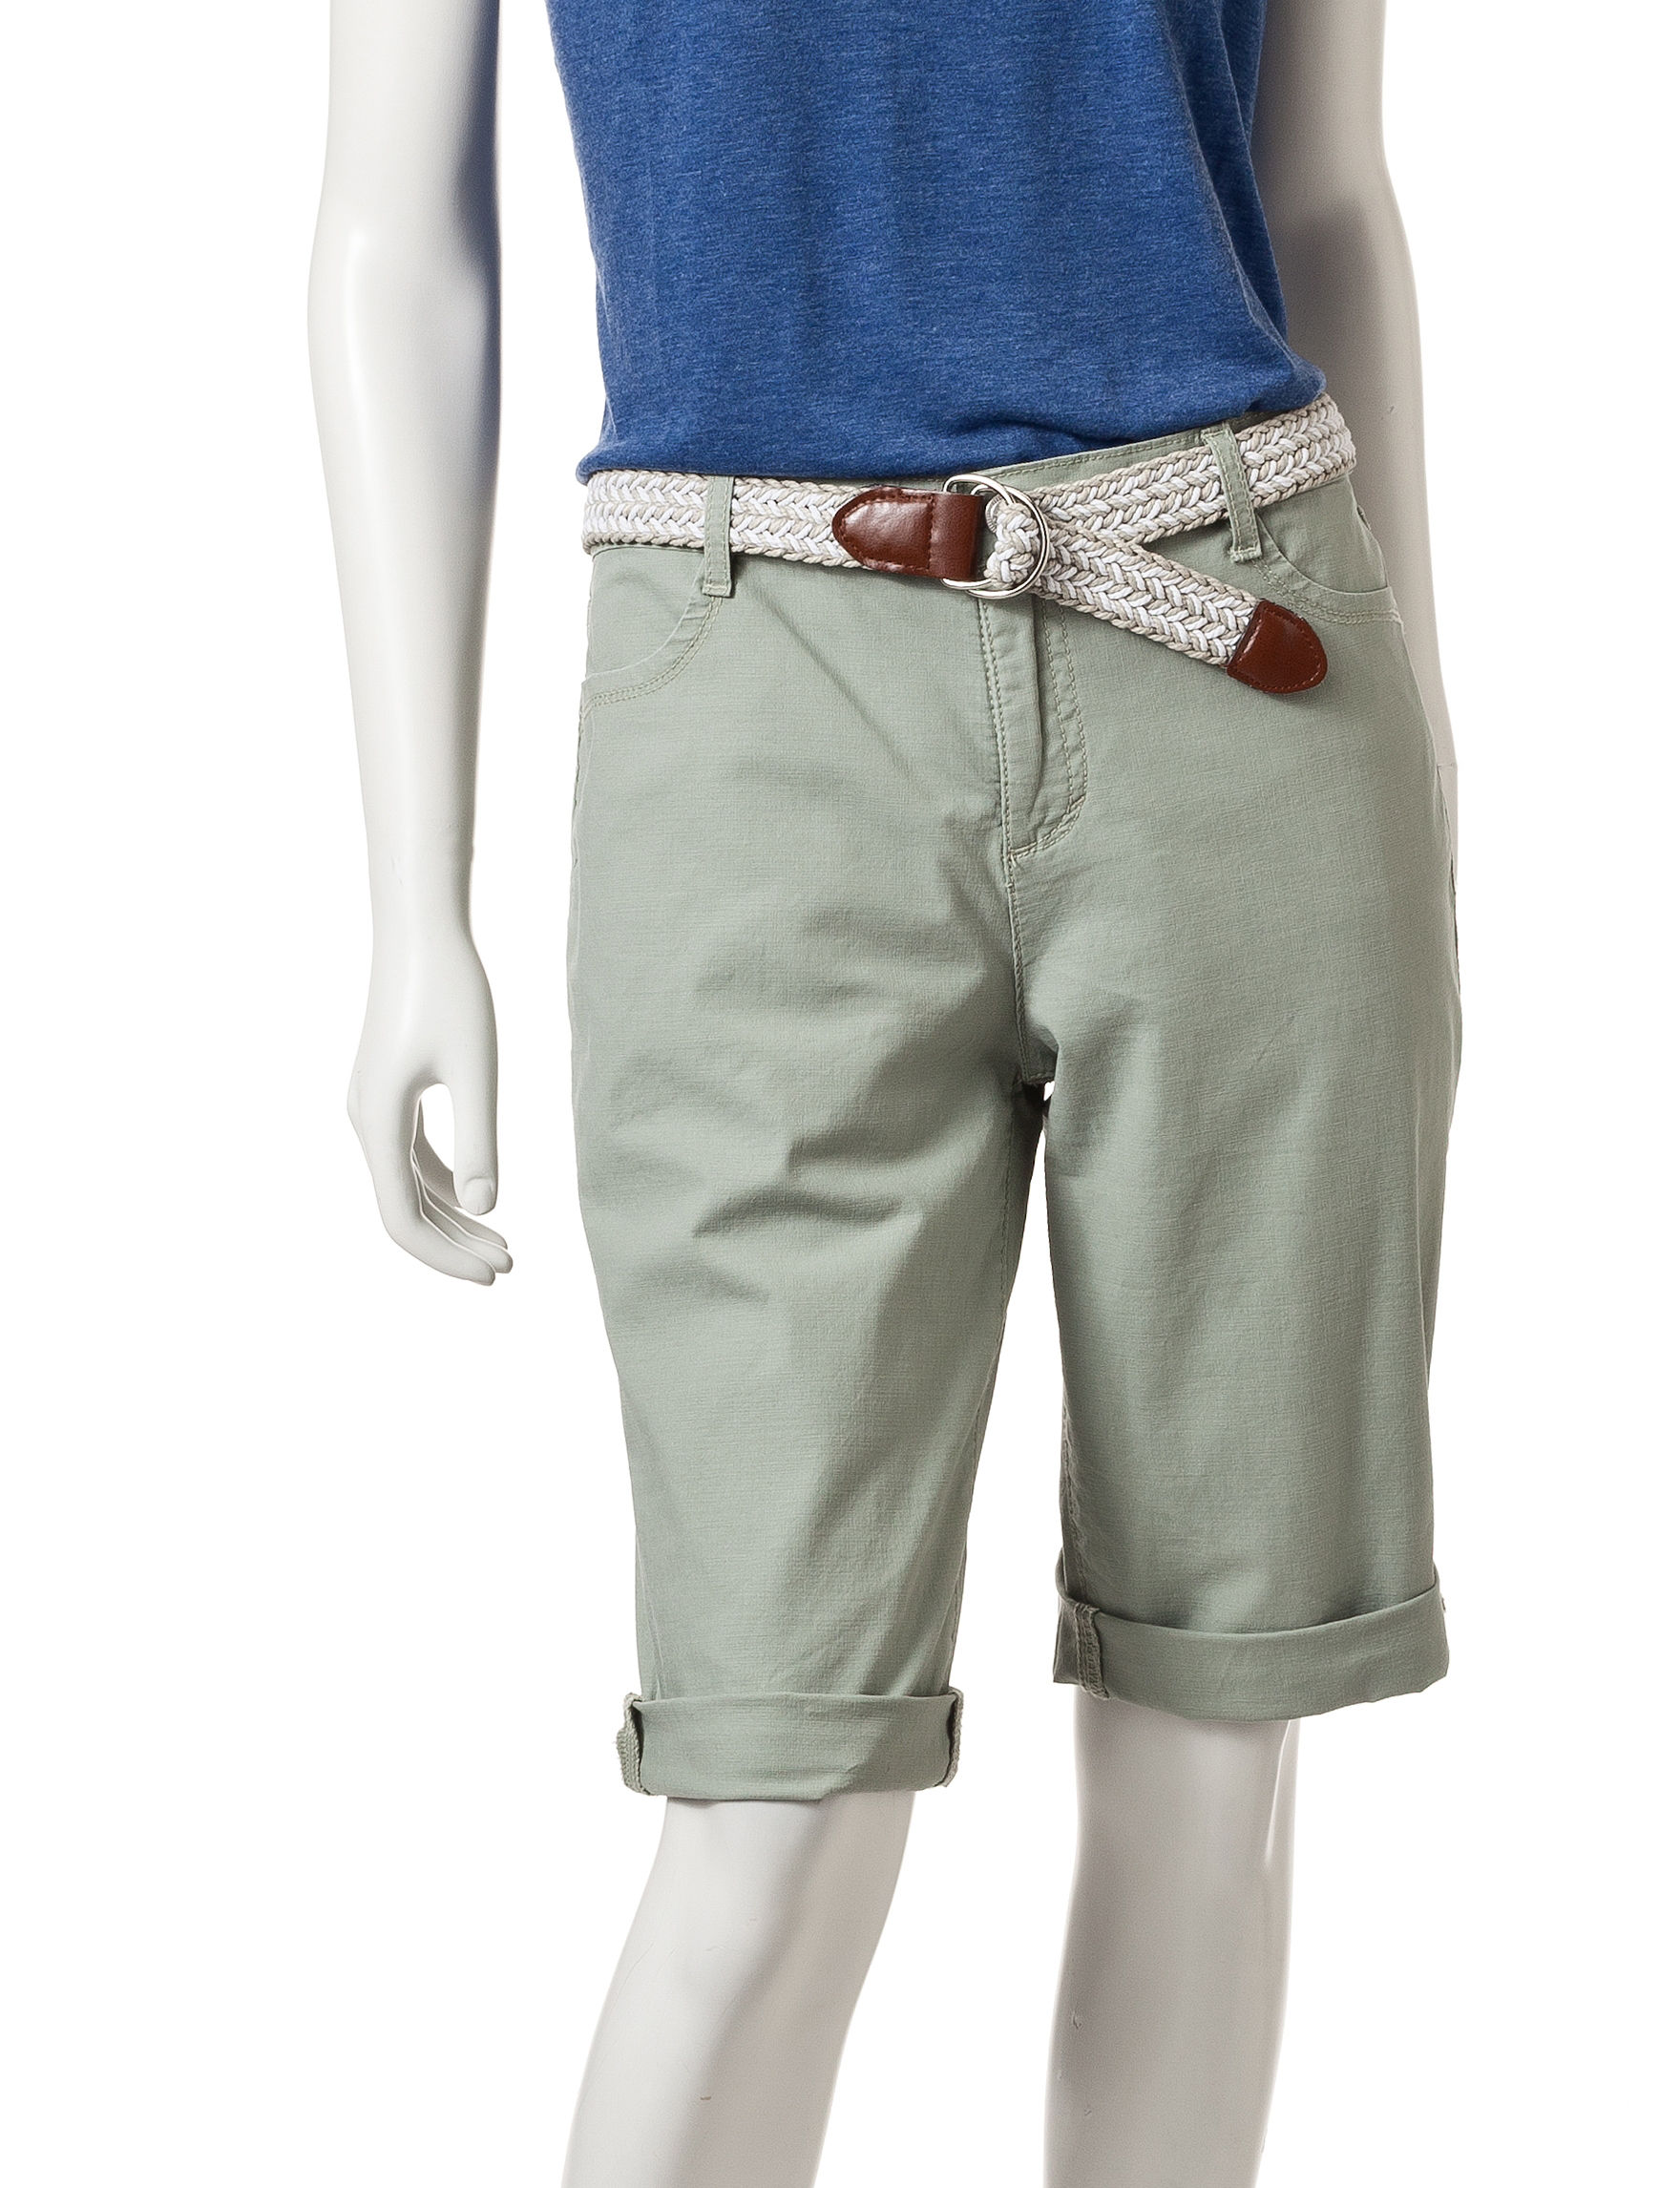 Bandolino Beige Tailored Shorts